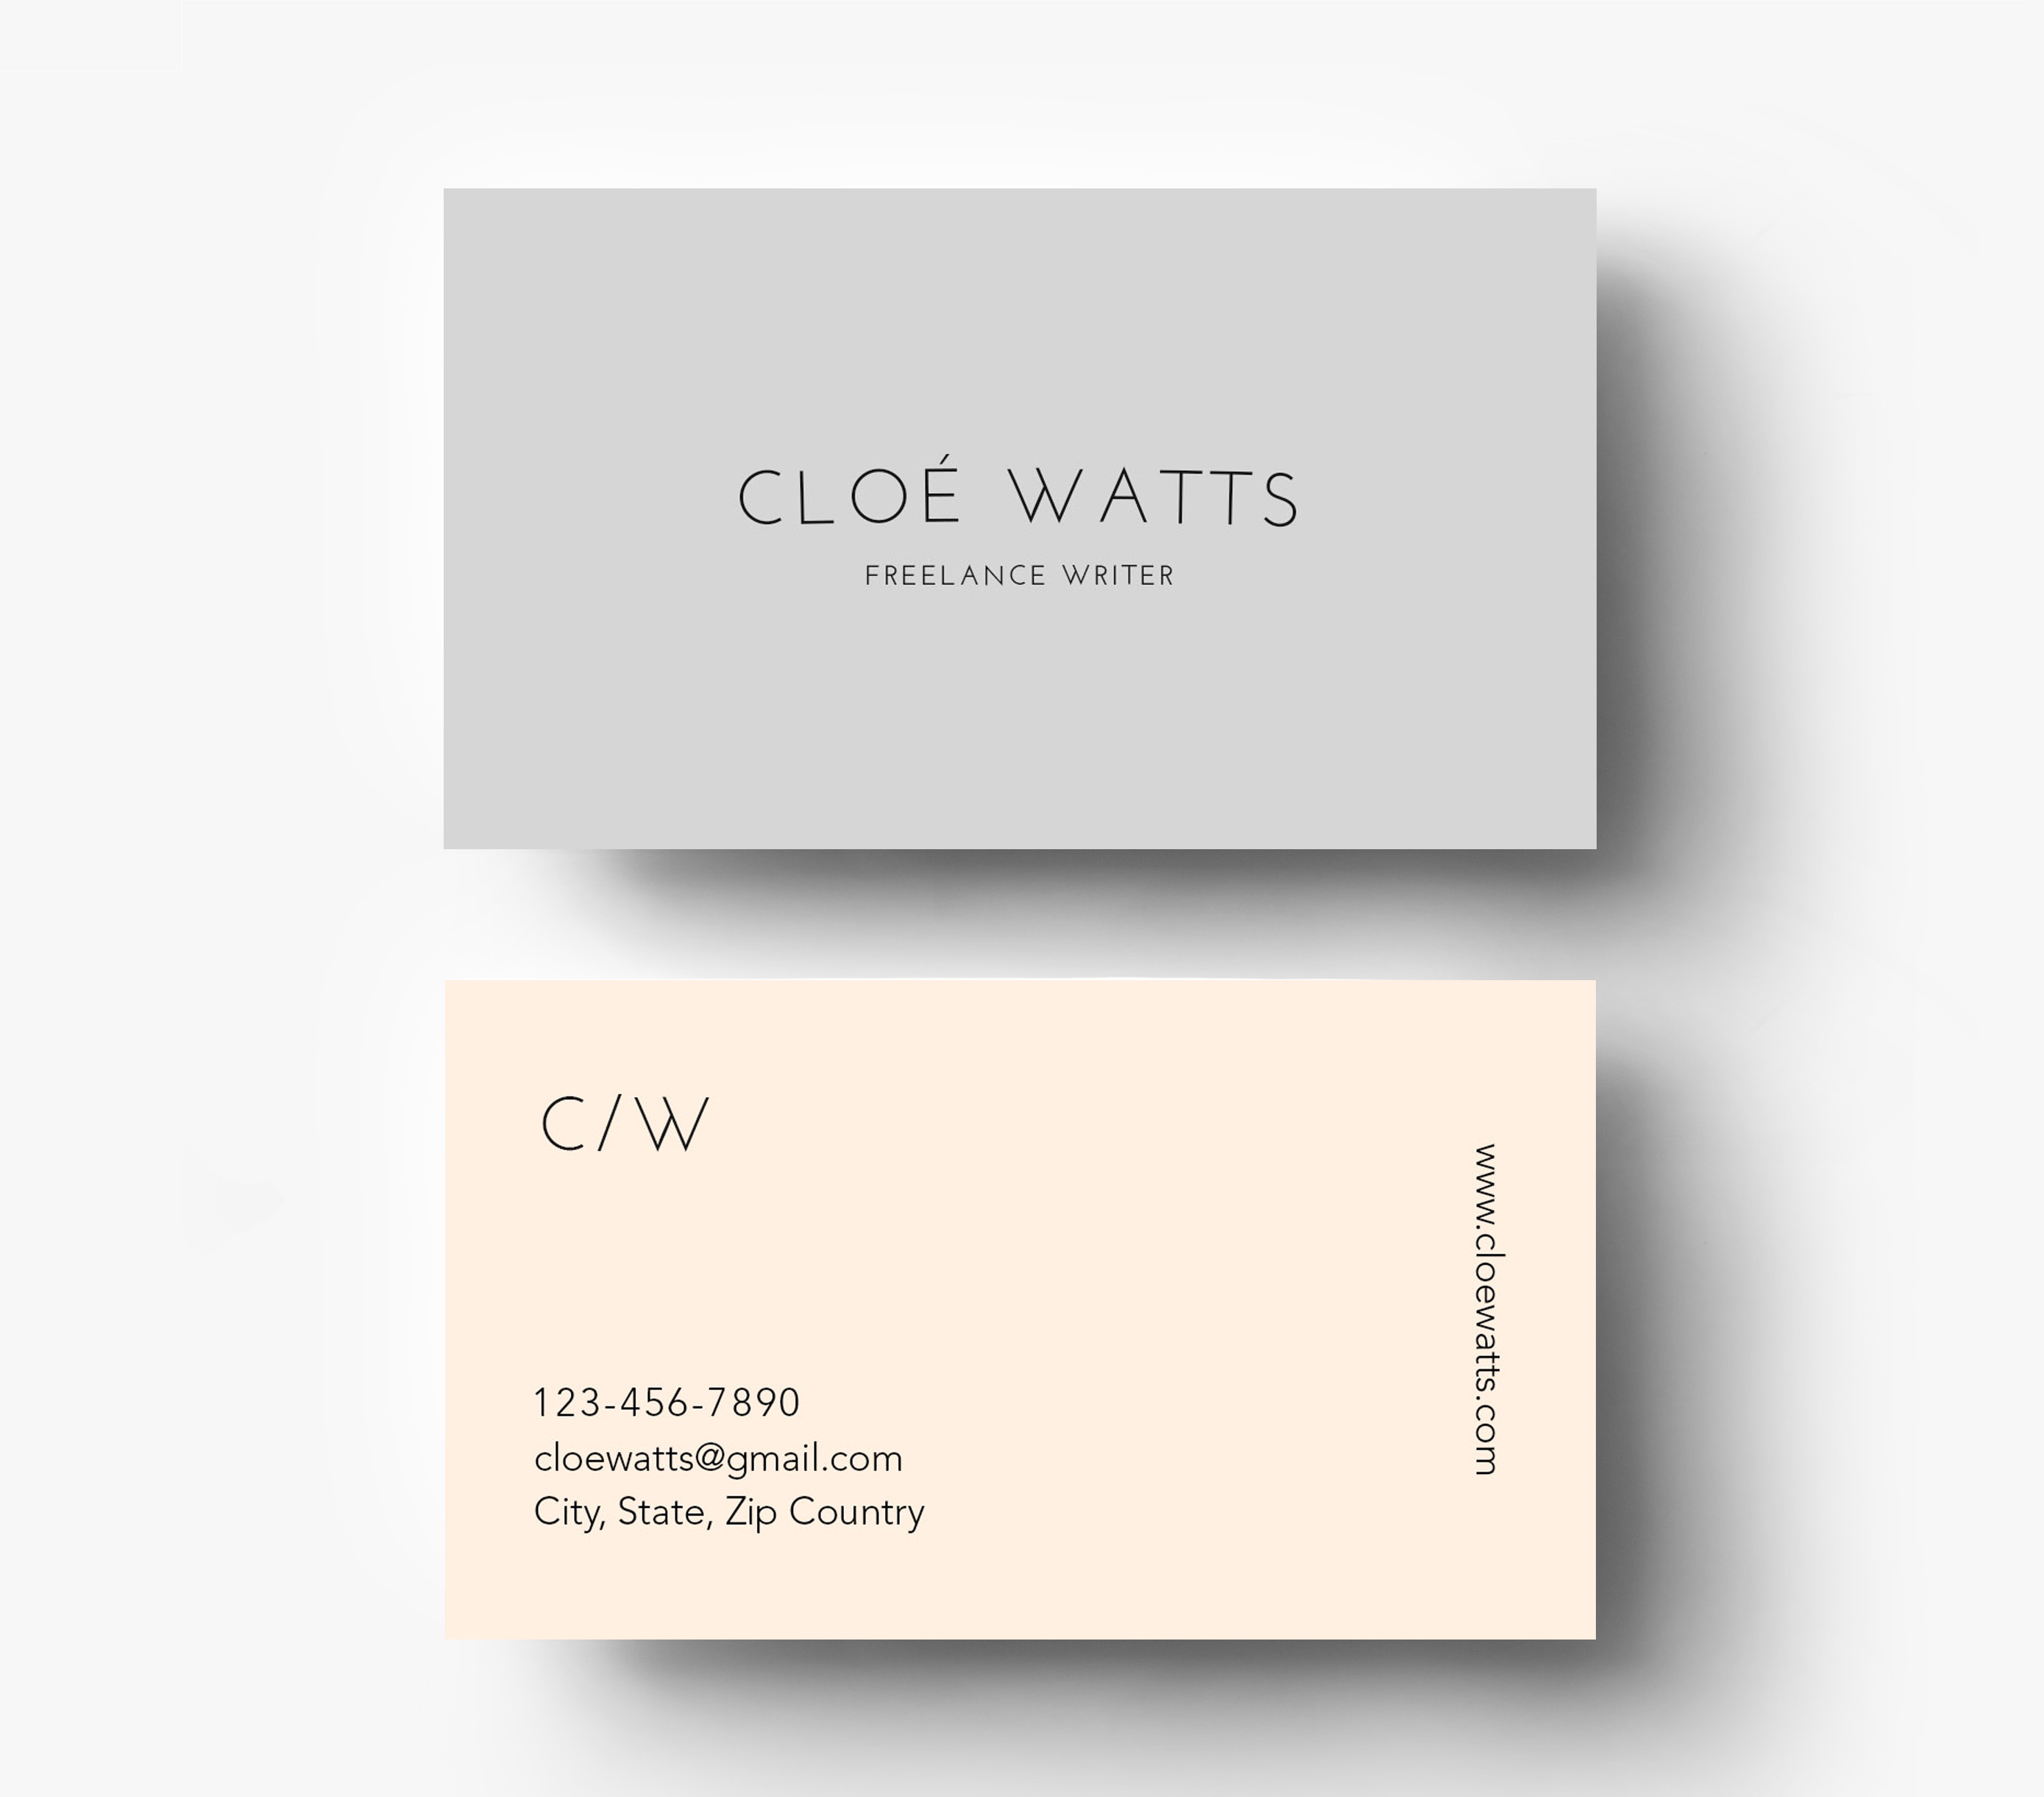 Simple business cards inspiration - CardFaves